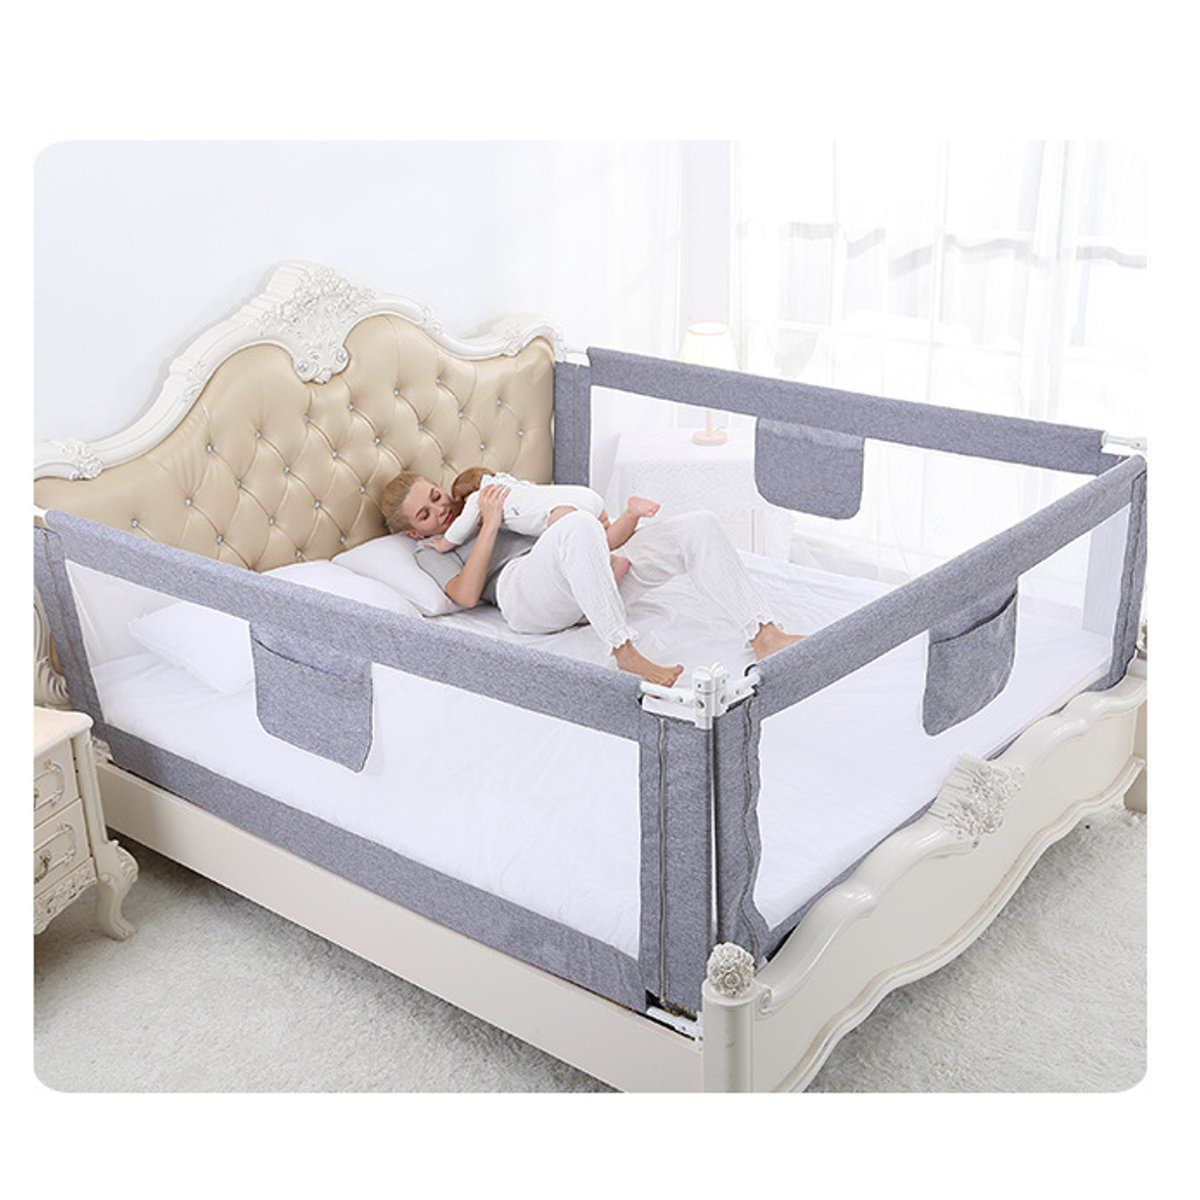 2M Baby Bed Fence for Child Safety used as Baby Gate from Falling Accidentally while Sleeping or Playing 15